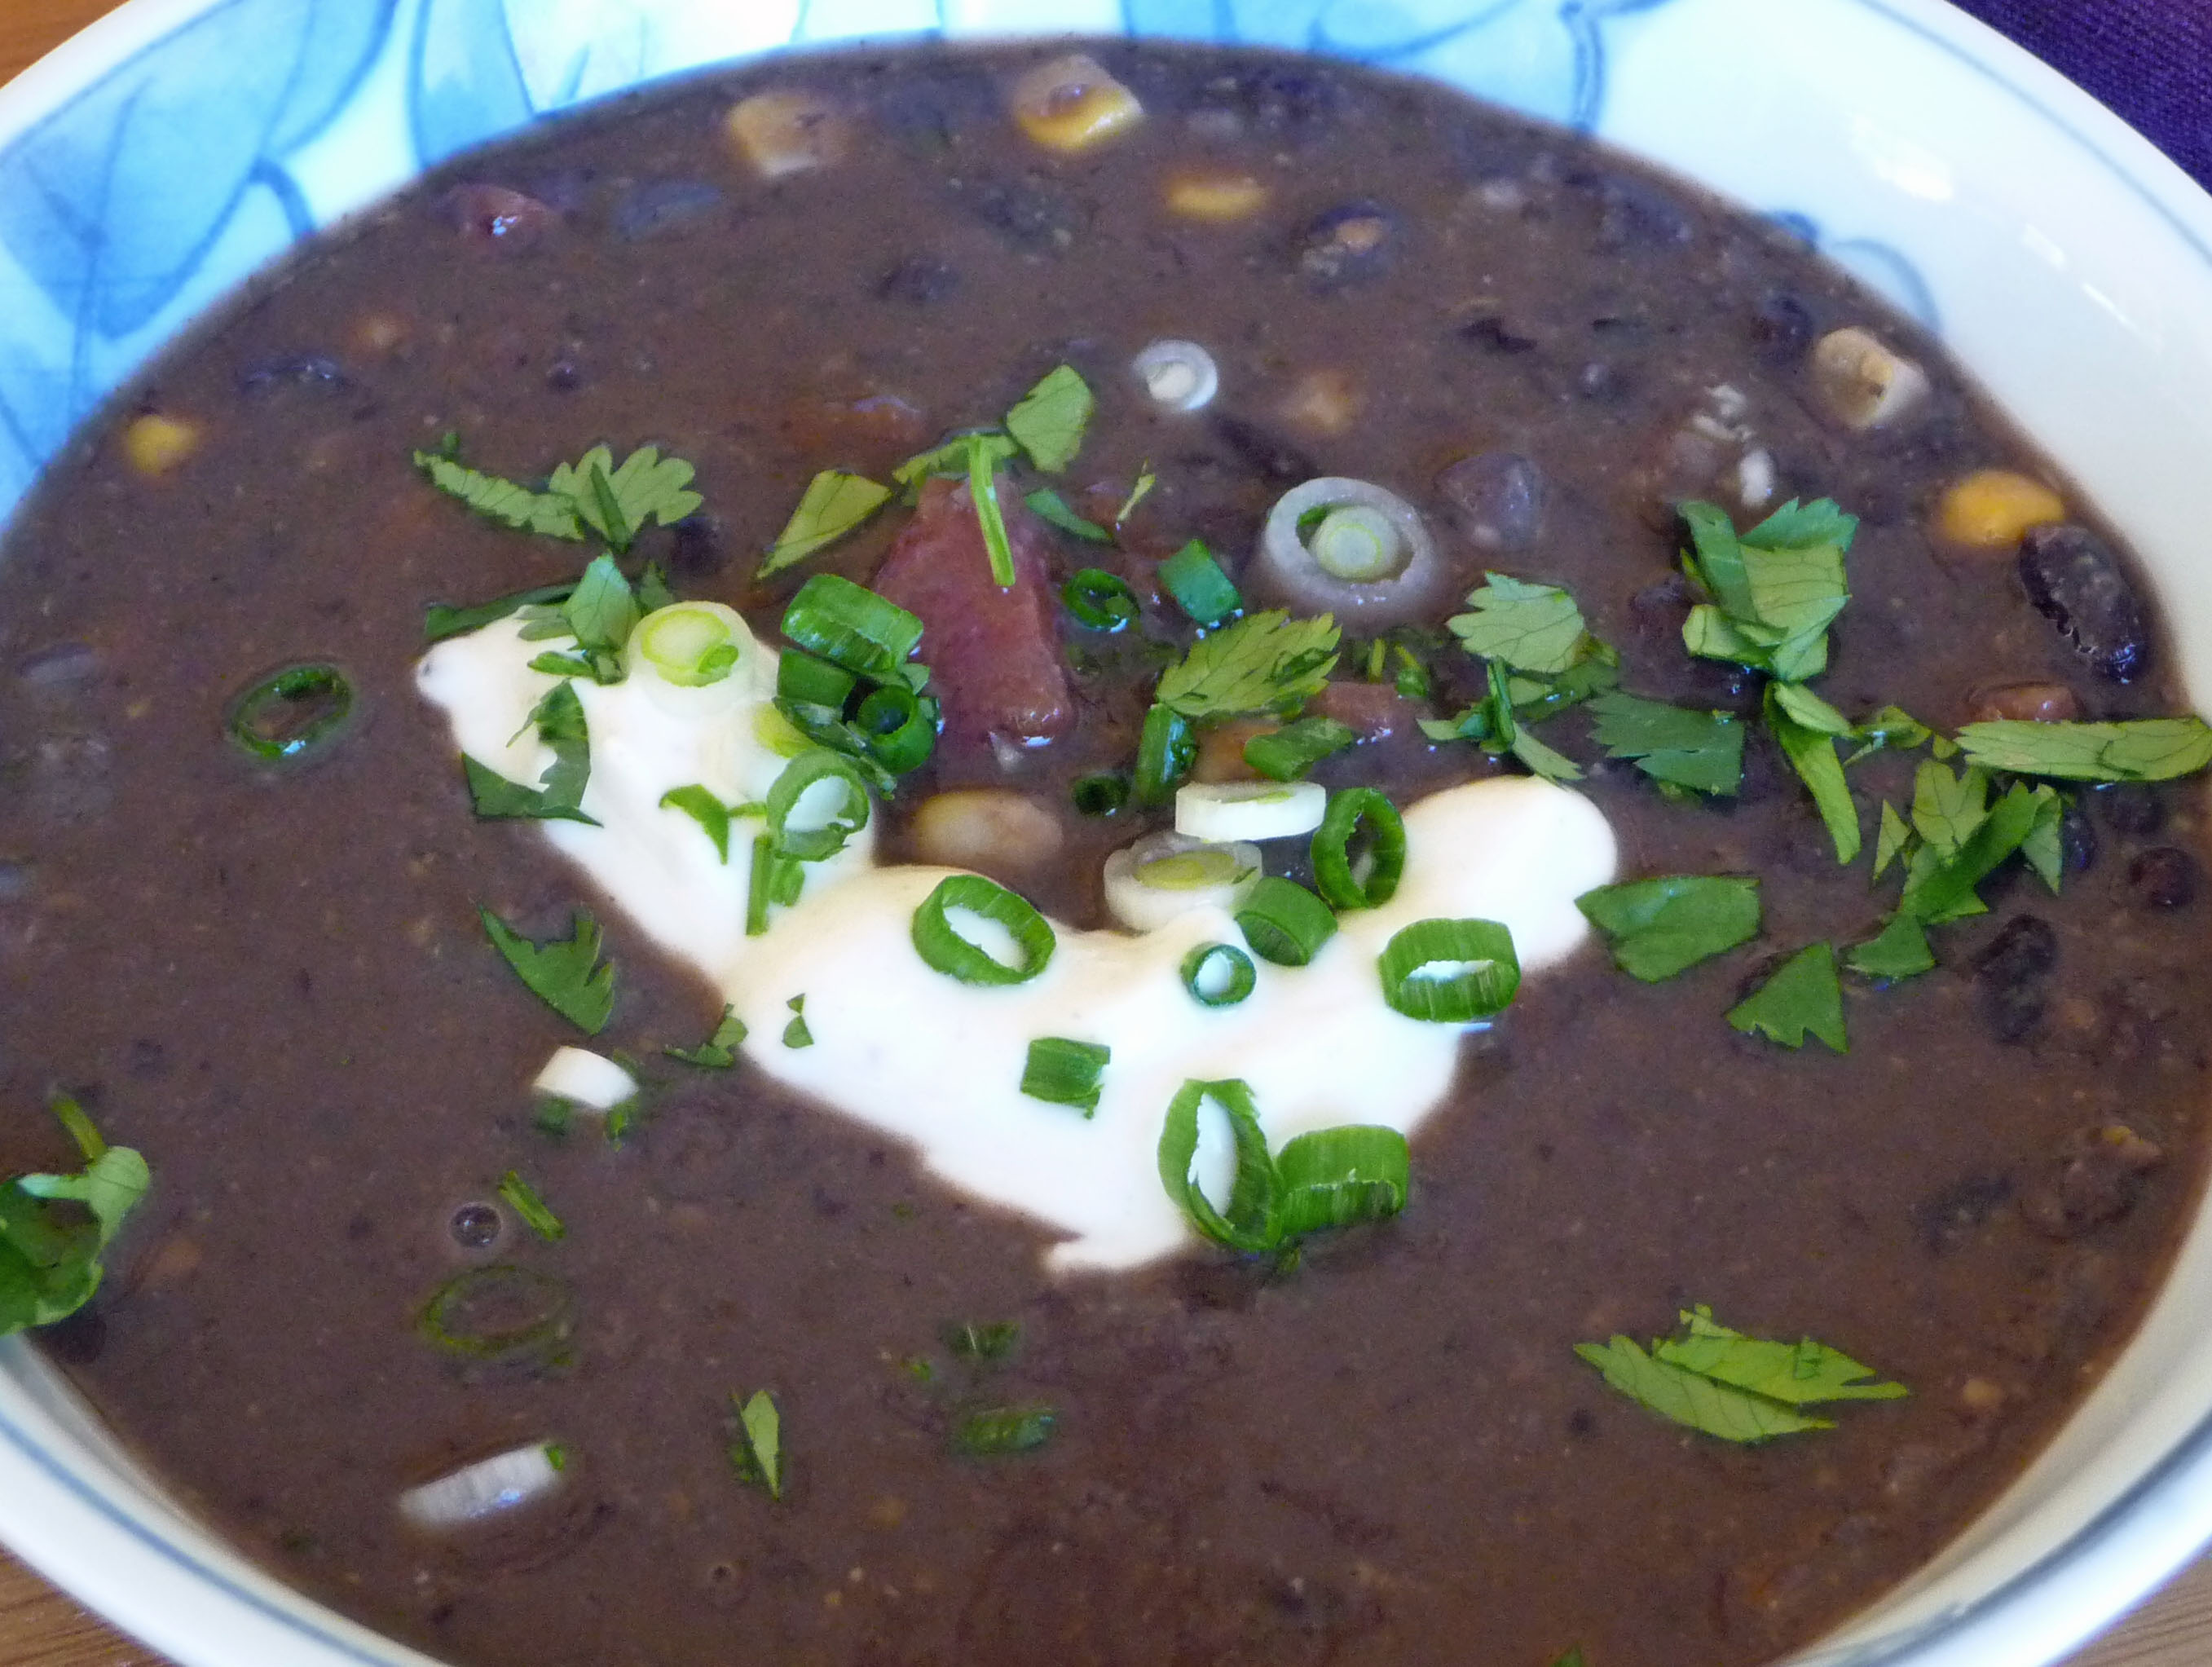 Black Bean Soup w/ Garnishes (c) jfhaugen